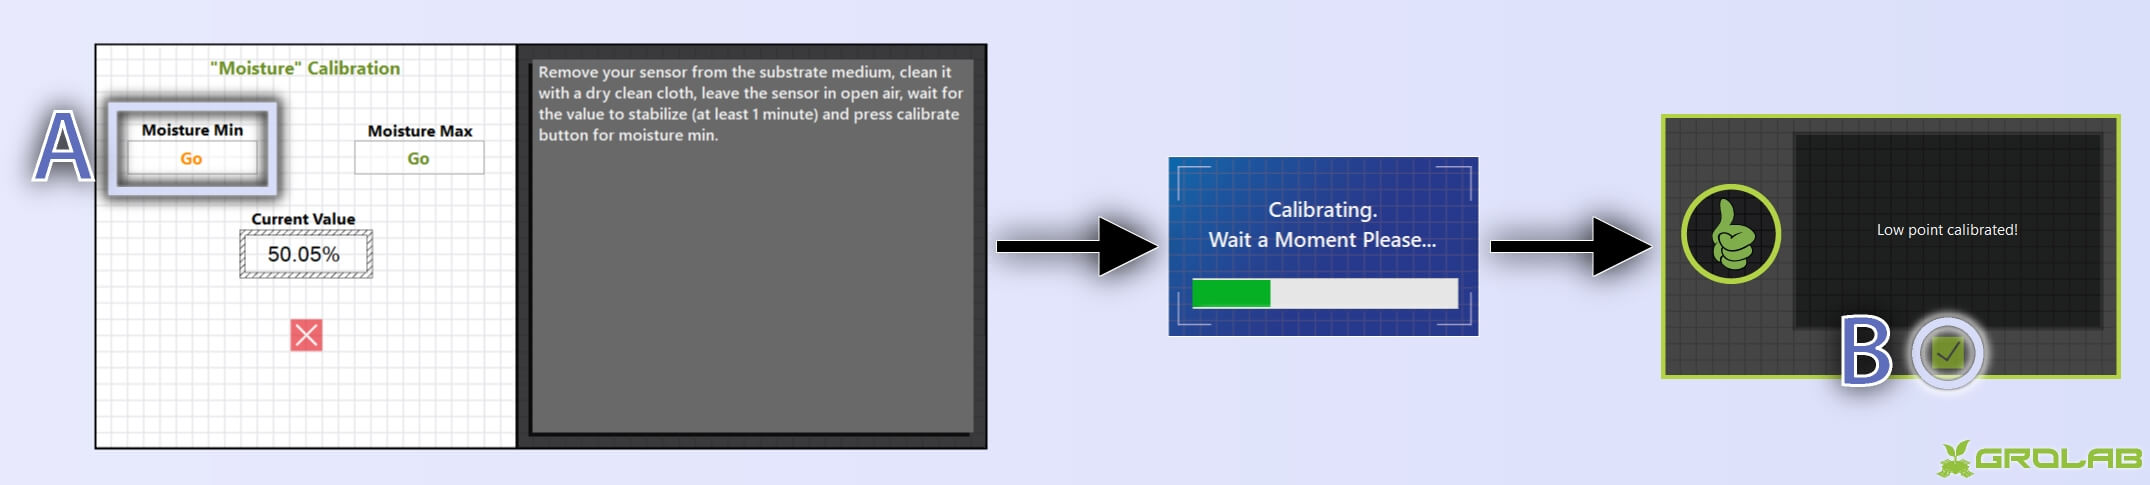 "Instructions to calibrate moisture sensor low point: A-With GroLab™ Software open inside moisture sensor calibration wizard, click on ""Go"" Button on the left side inside the ""Moisture Min"" panel; Wait the calibration operation to end; B-Click ""ok"" button when the success message prompt appears."